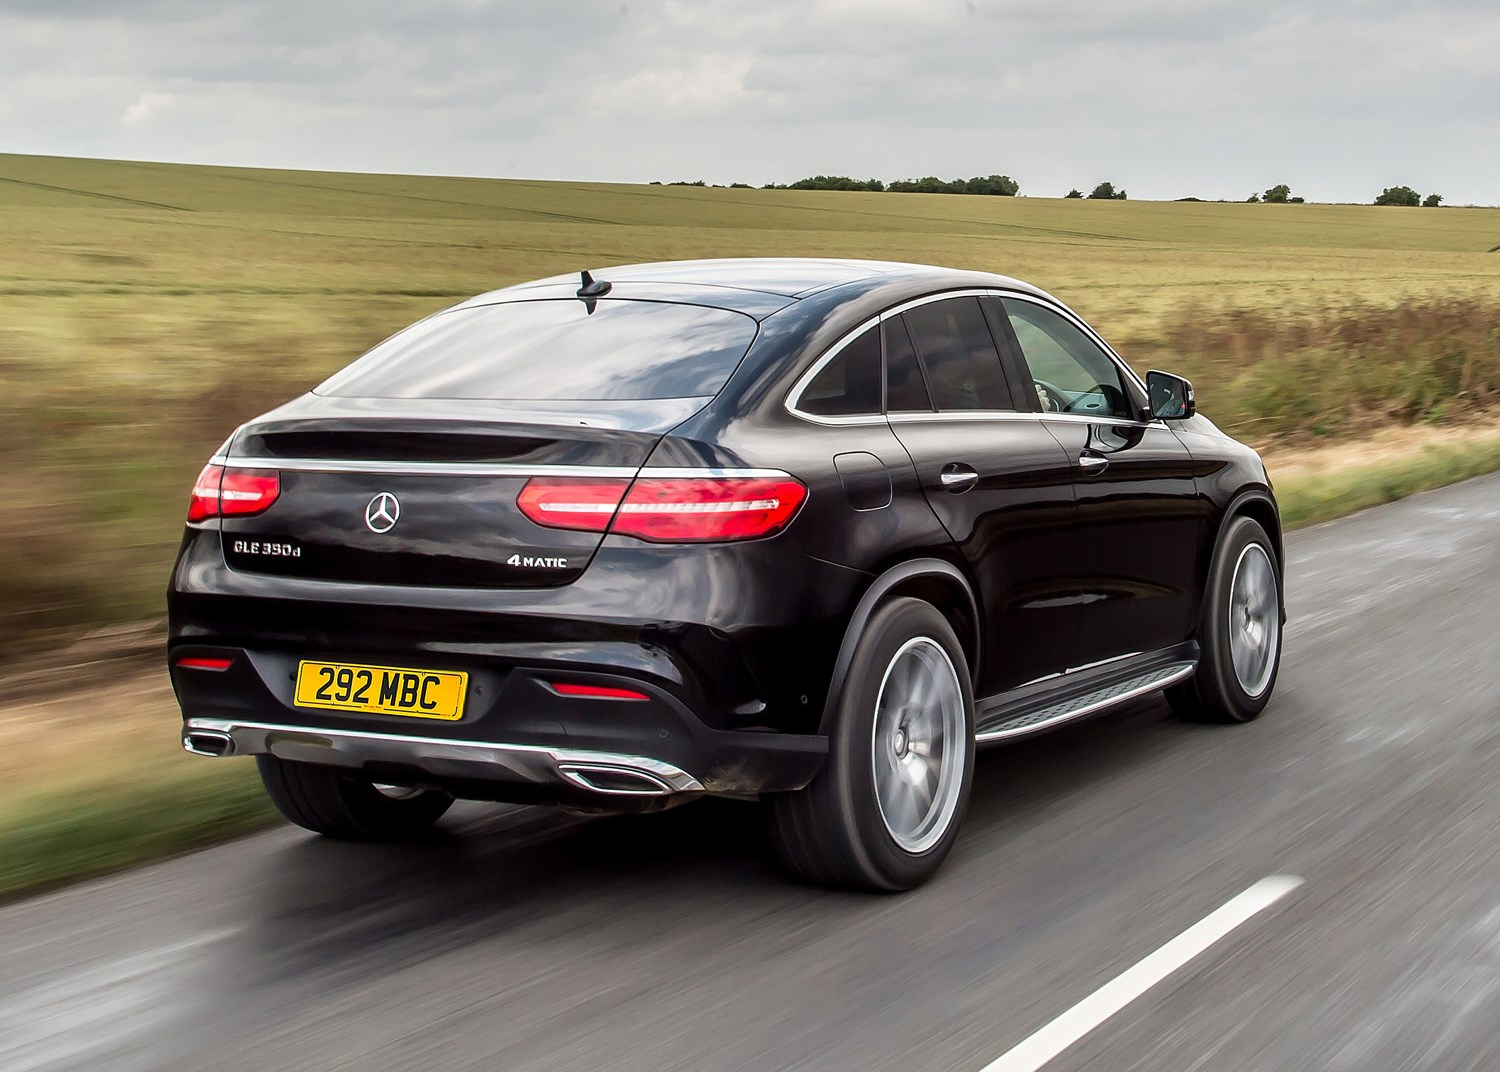 mercedes benz gle class coupe review 2015 parkers. Black Bedroom Furniture Sets. Home Design Ideas